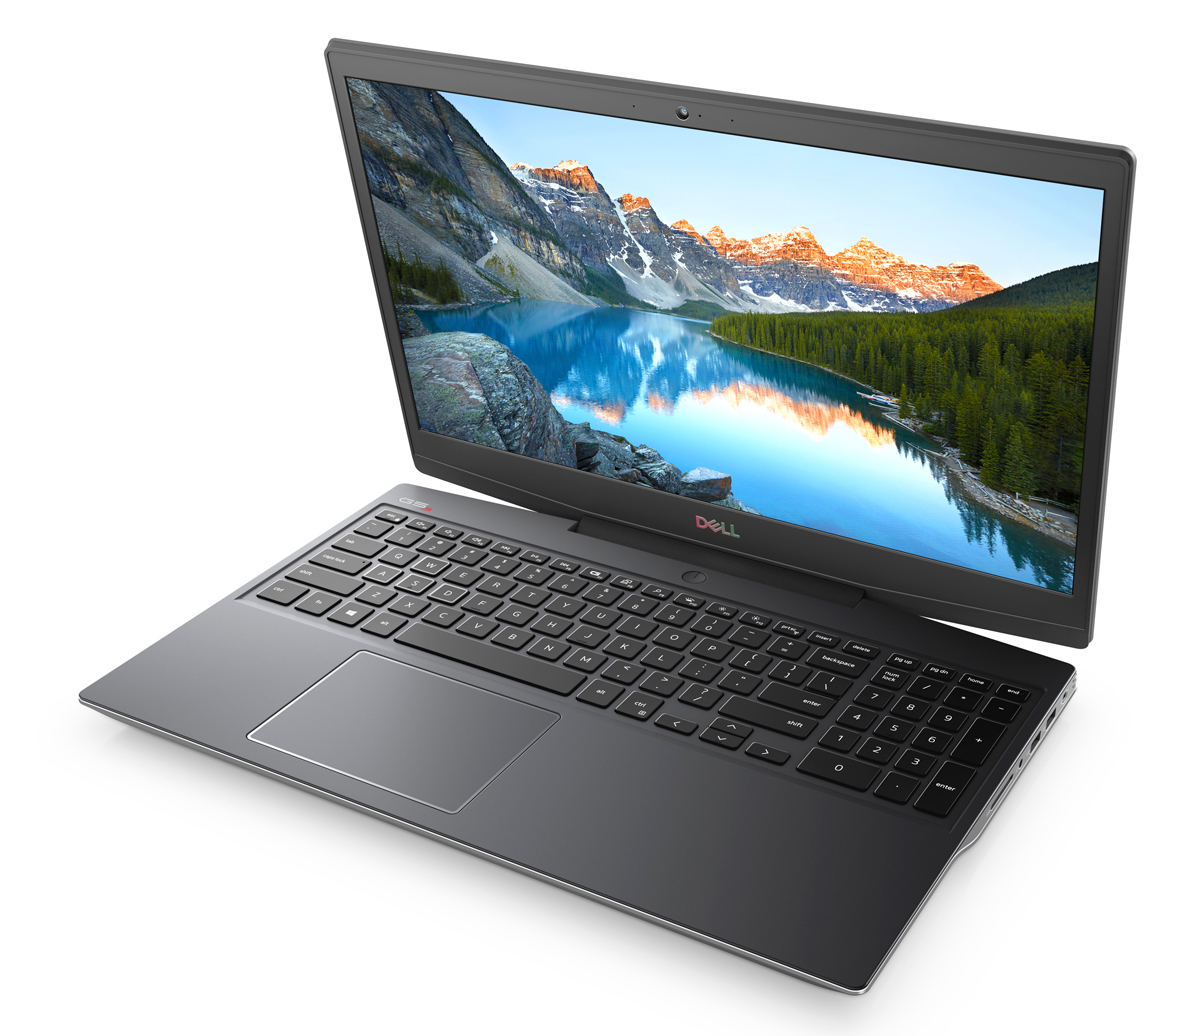 The Dell G5 15 SE gaming laptop